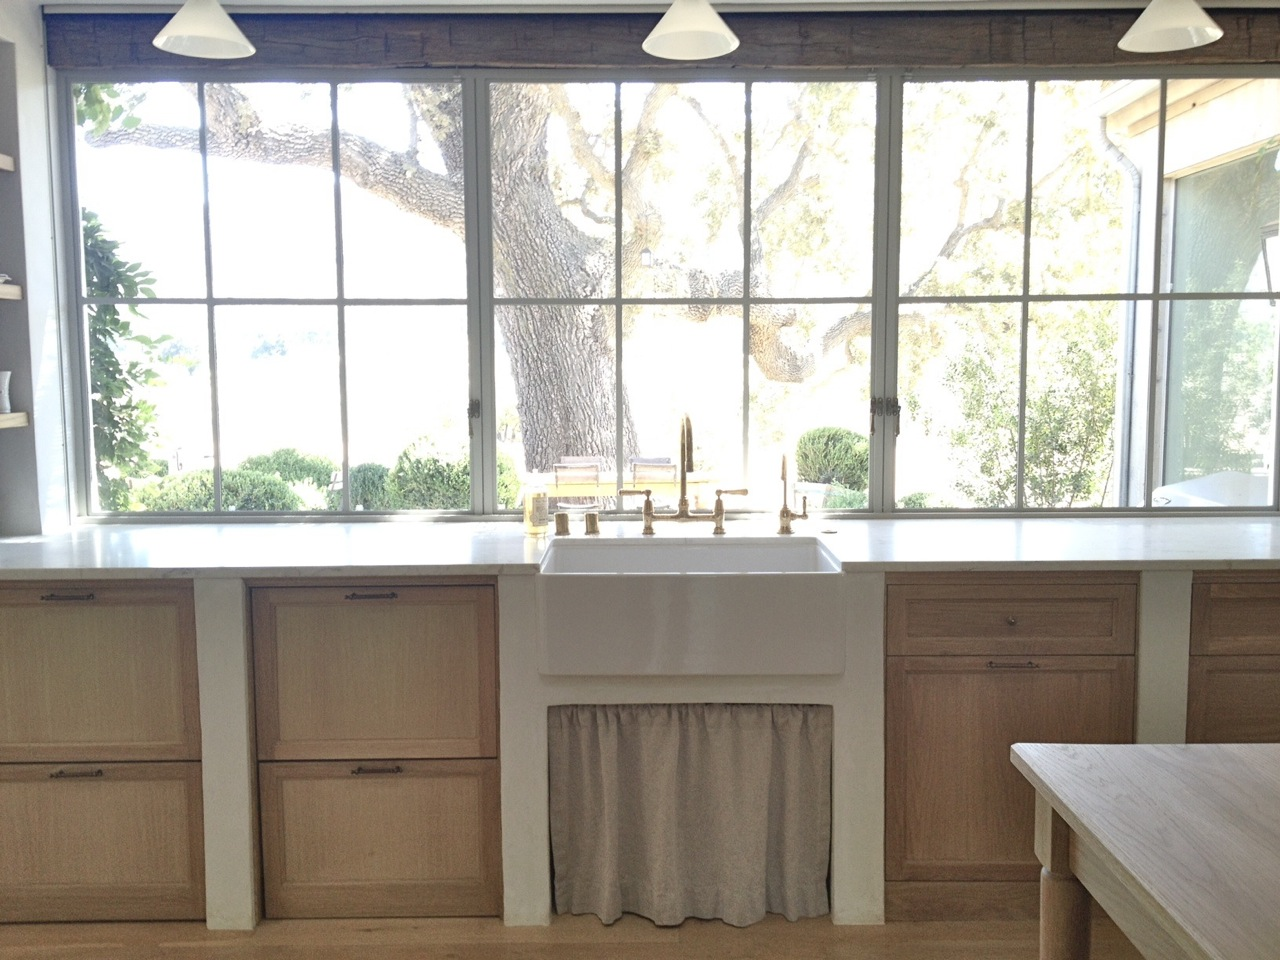 Glorious modern farmhouse kitchen with farm sink, white oak cabinetry, wall of windows, and linen skirt